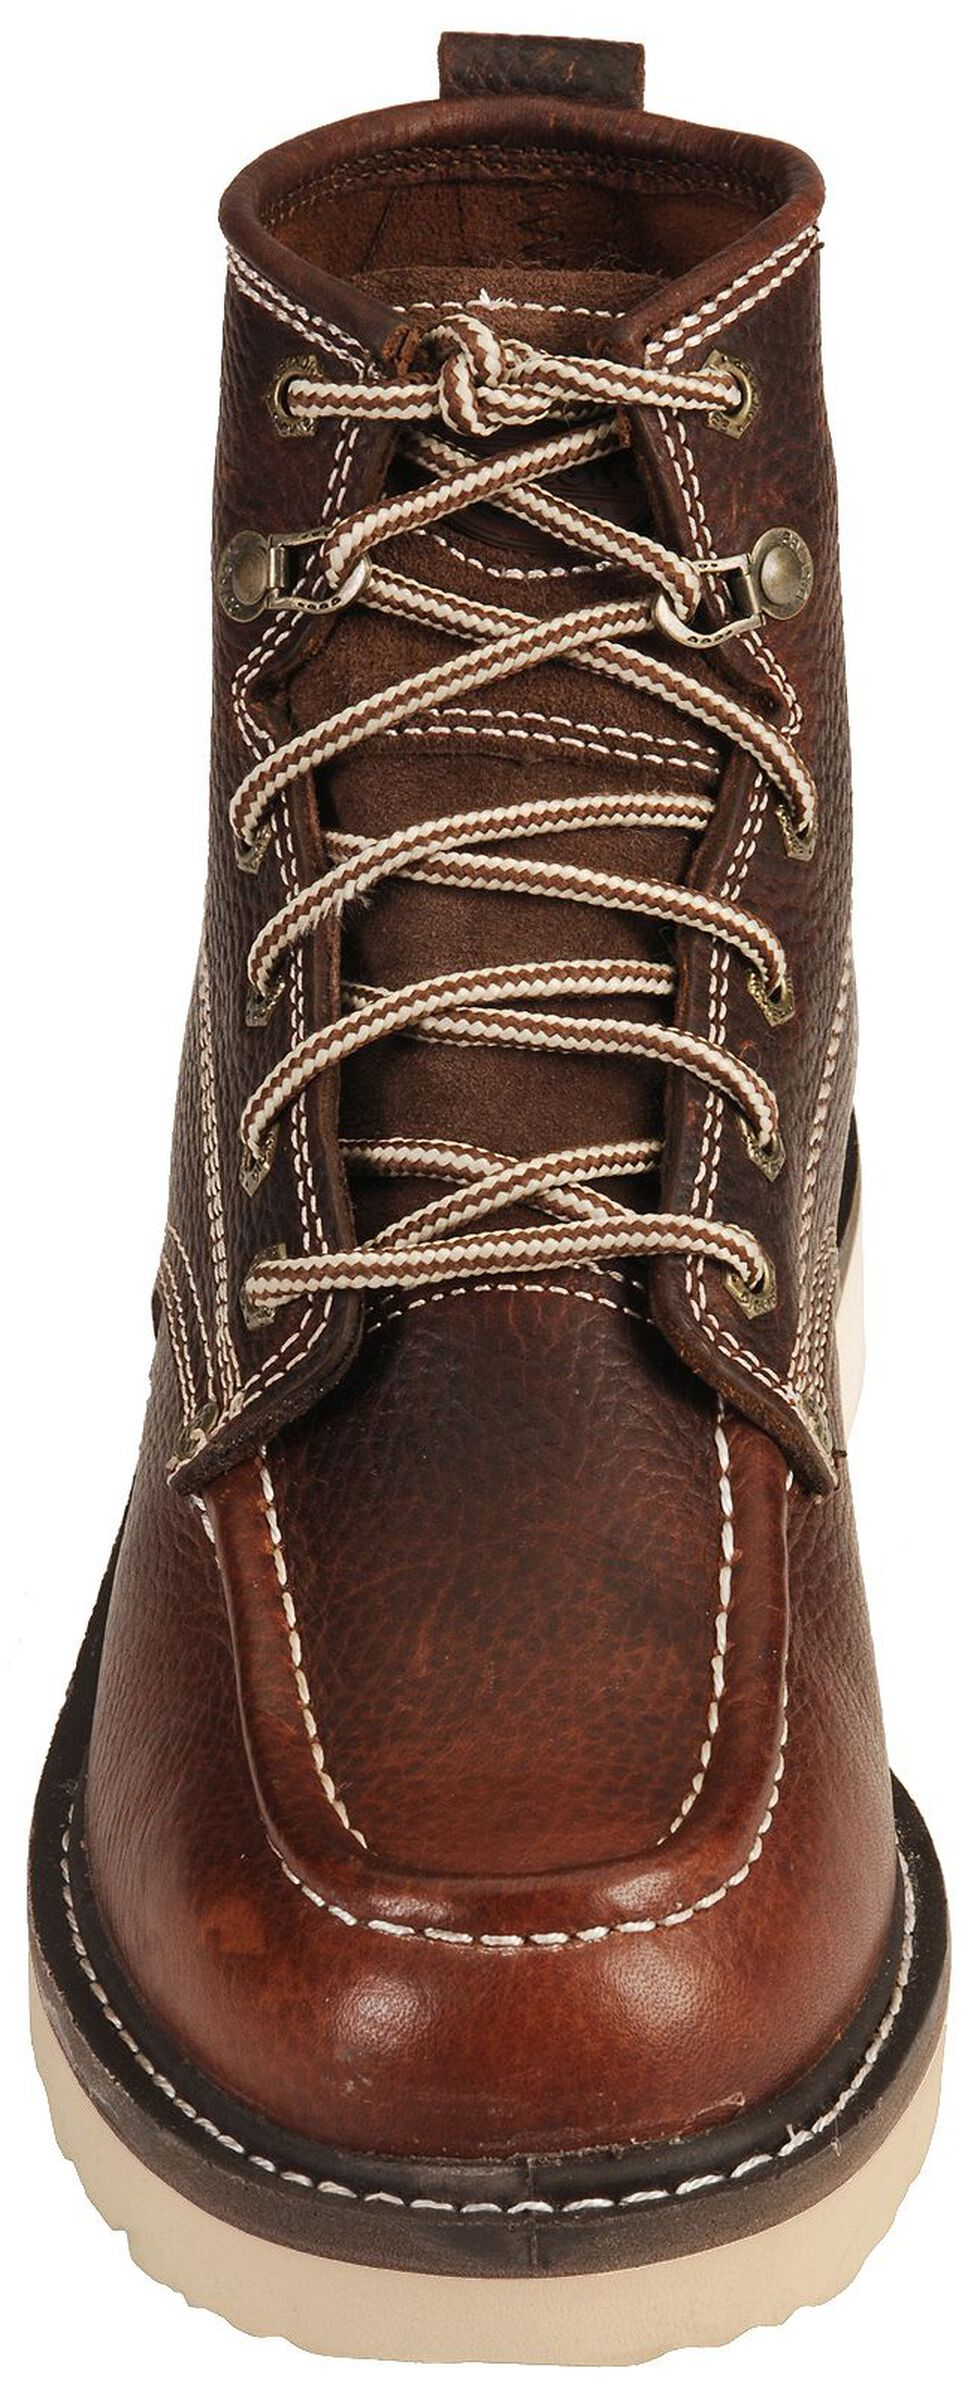 "Dickies Trader 6"" Lace-Up Work Boots - Round Toe, Red Oak, hi-res"